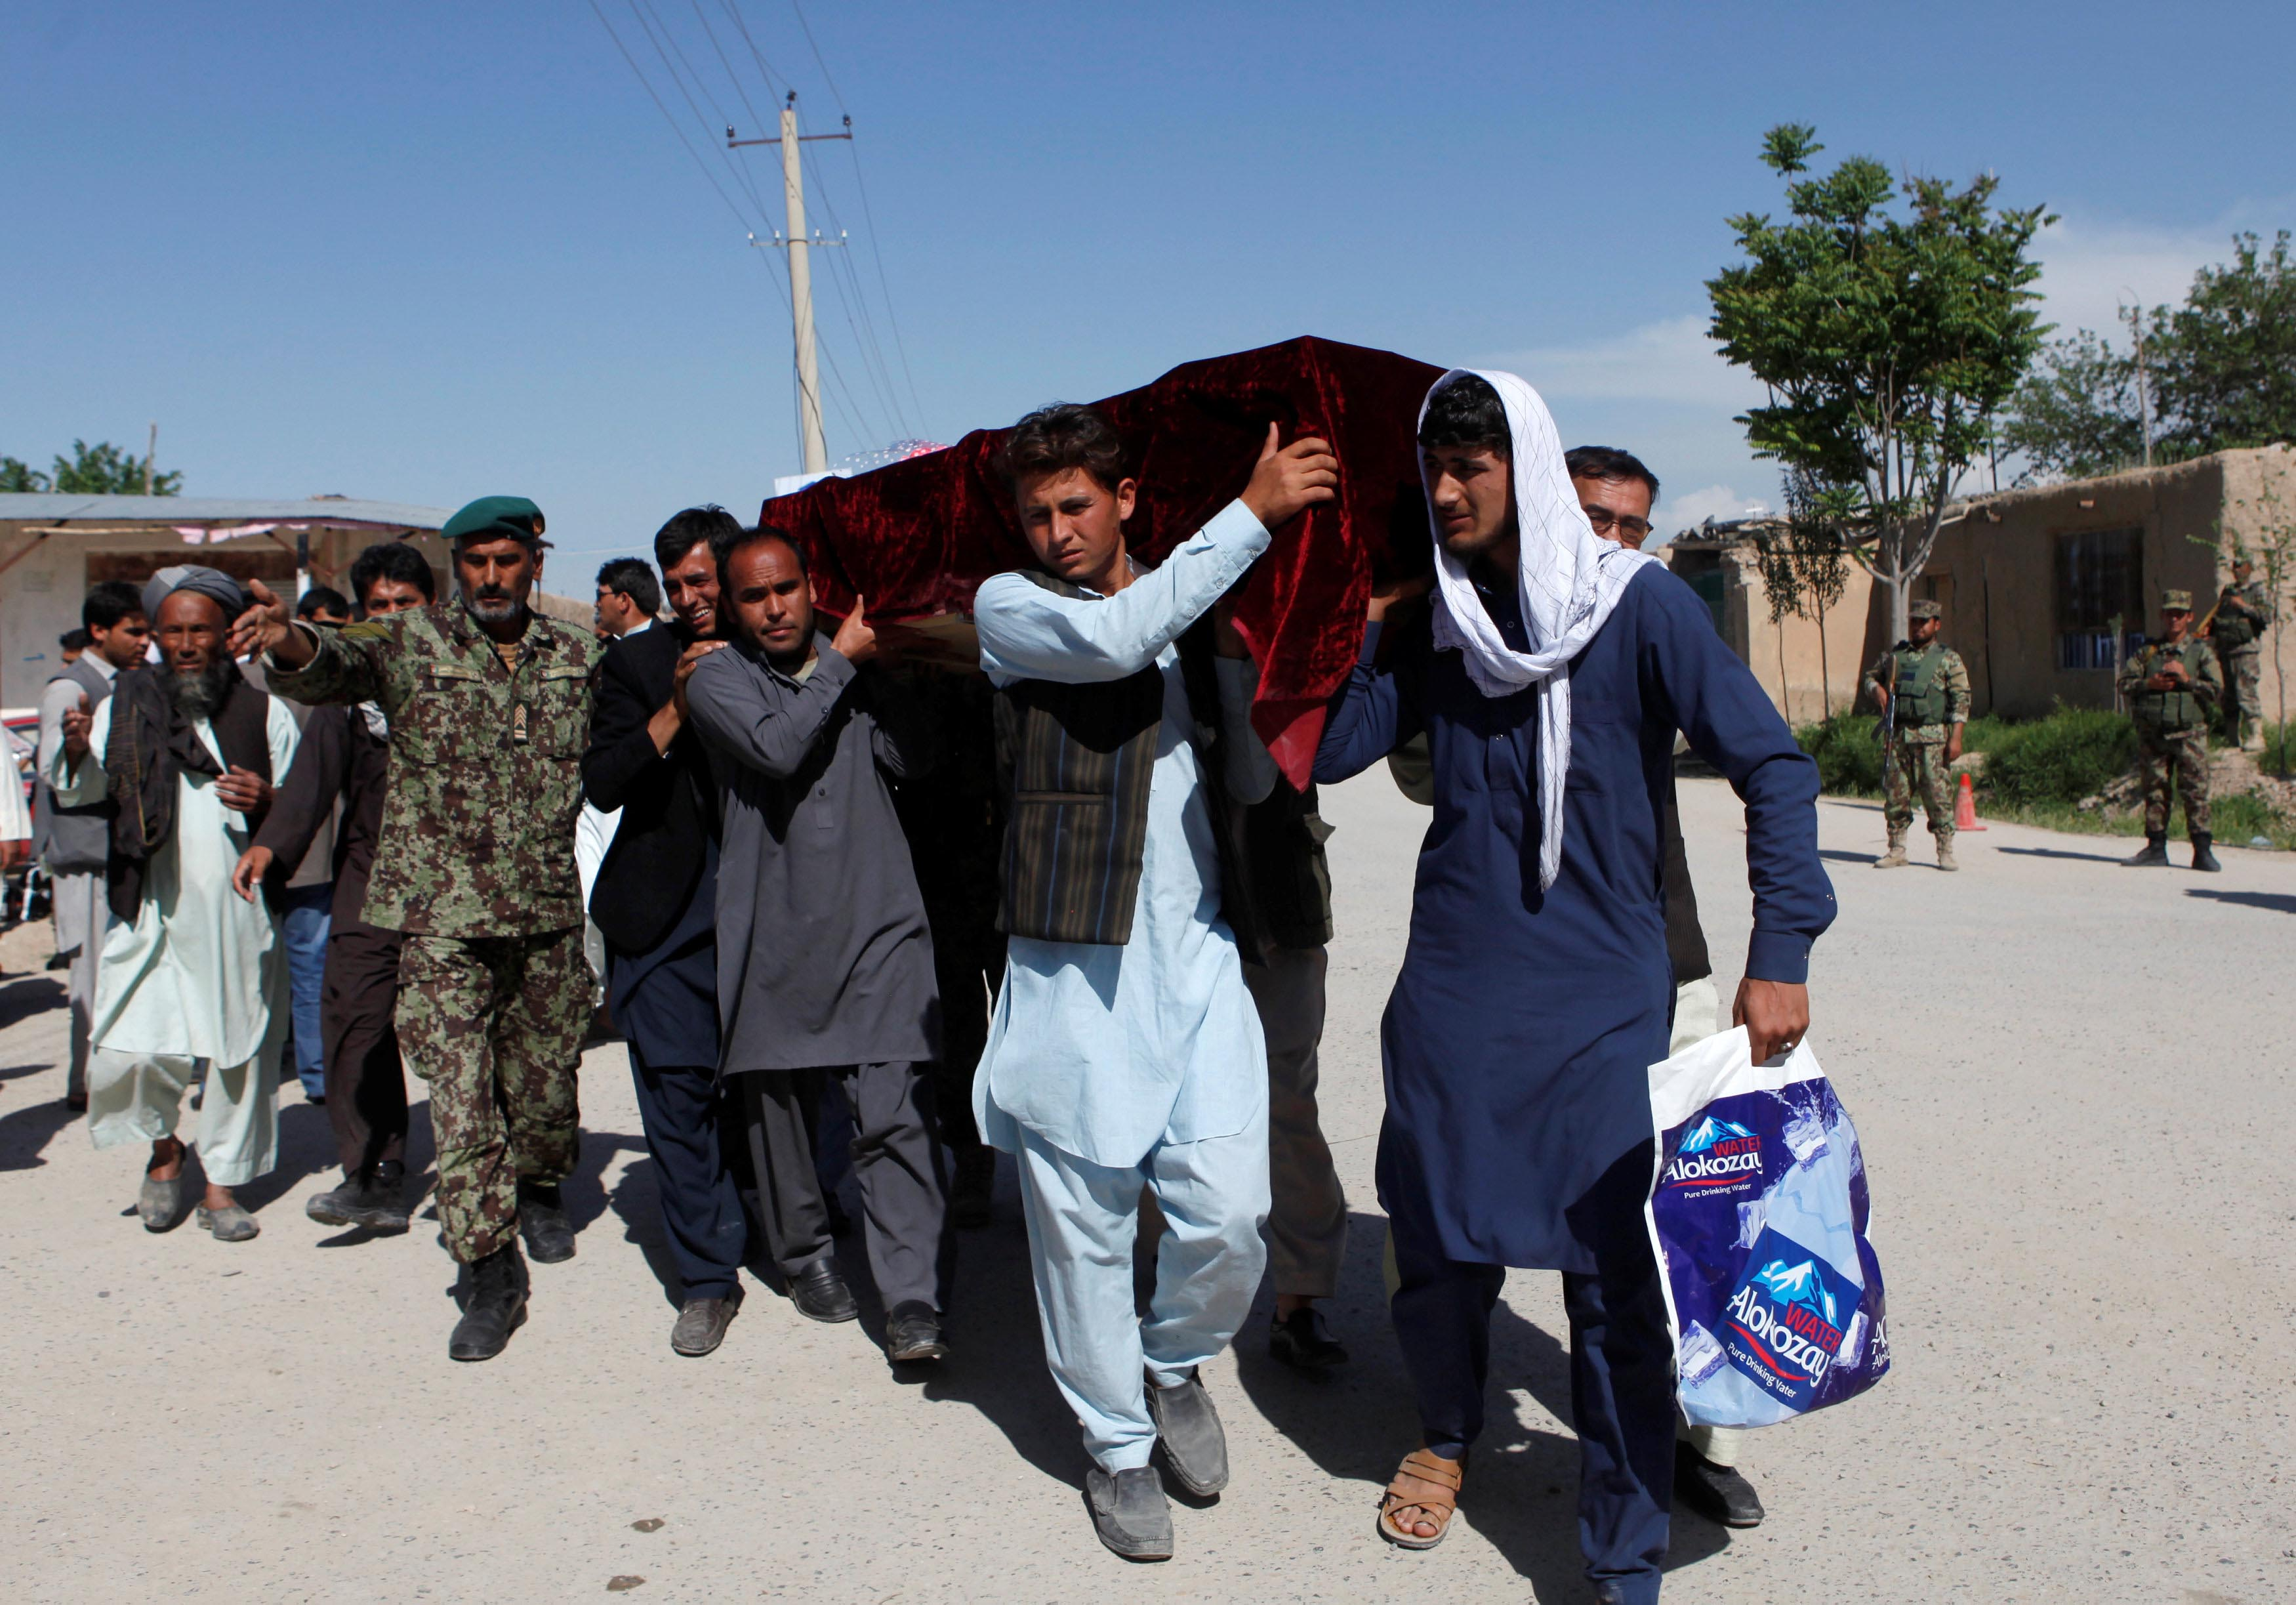 Relatives carry the coffin of one of the victims a day after an attack on an army headquarters in Mazar-i-Sharif, northern Afghanistan April 22, 2017. Photo: Reuters